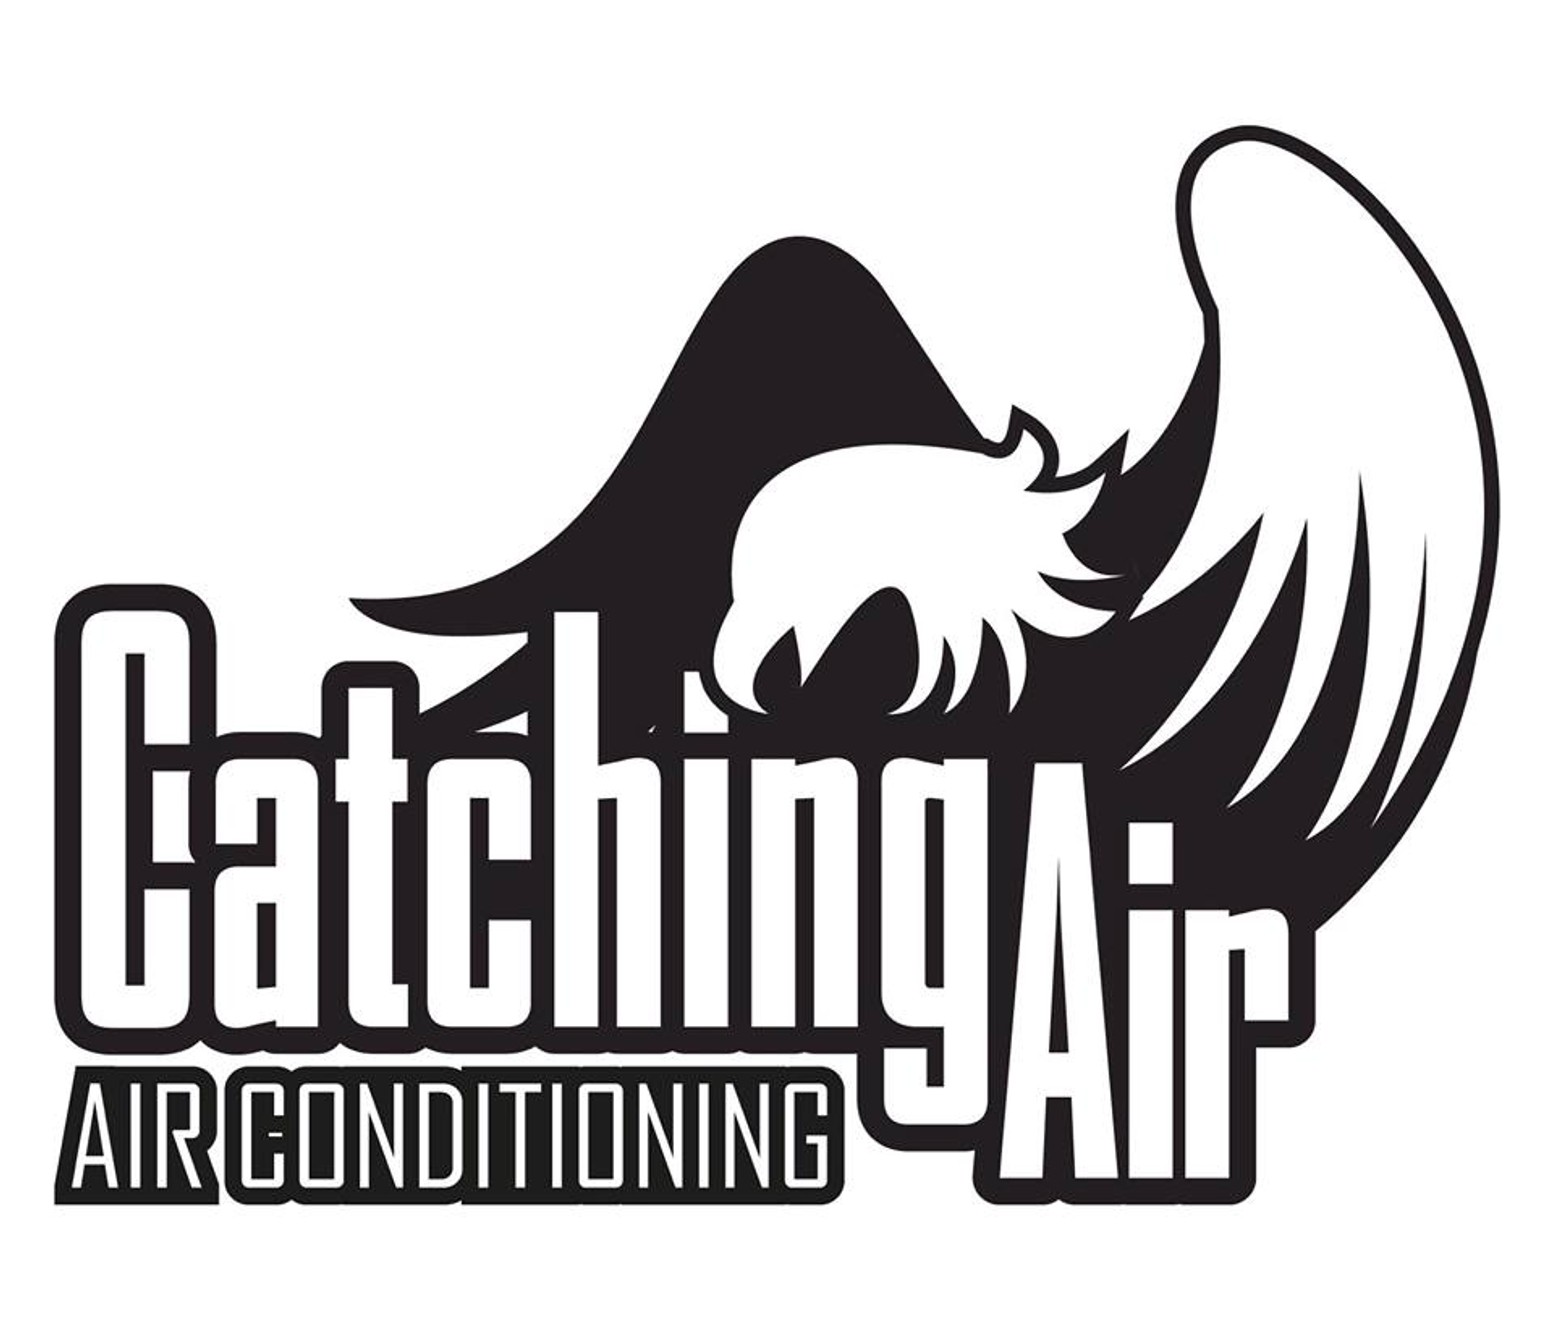 Catching Air Air Conditioning & Heating logo